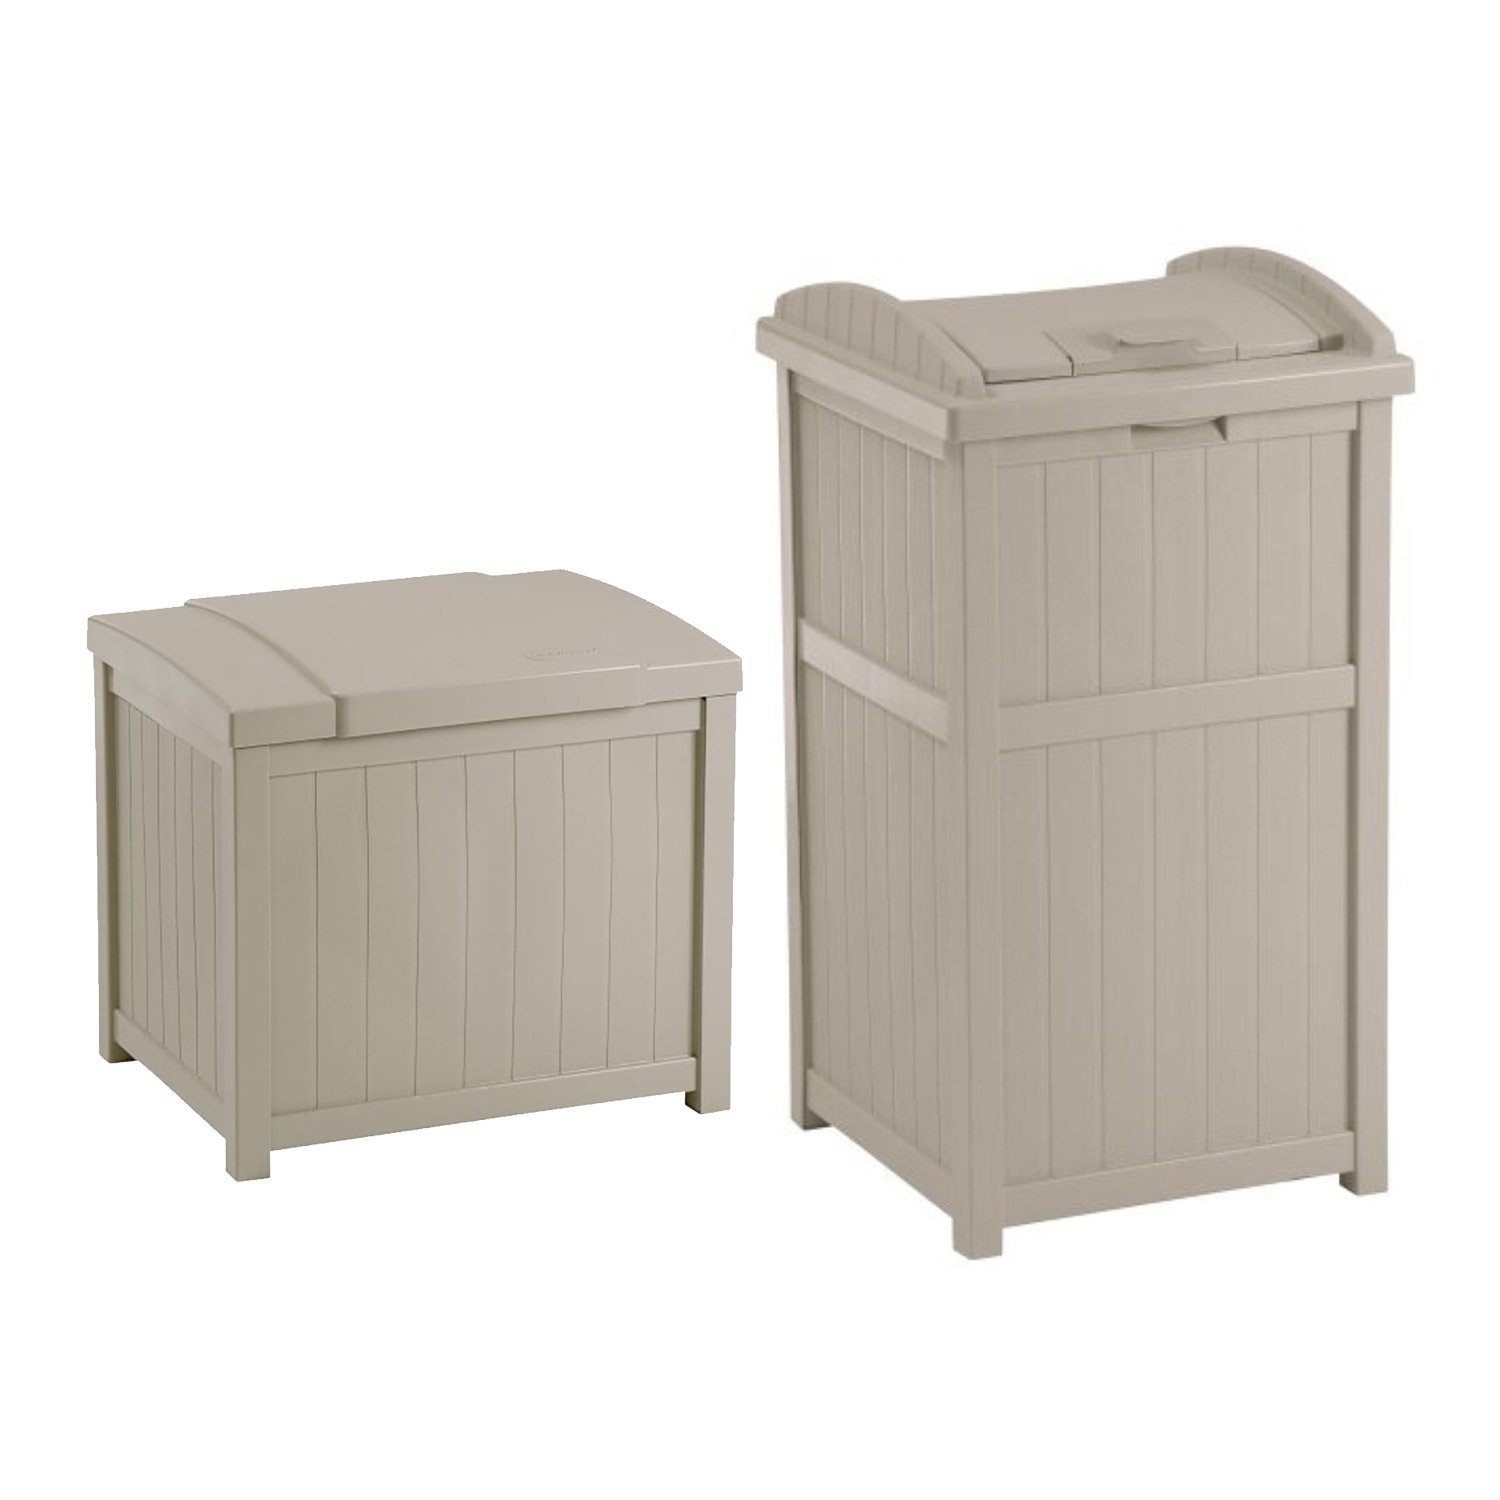 Suncast 22-Gallon Resin Deck Box, Light Taupe w/ 30-33 Gallon Trash Can Hideaway